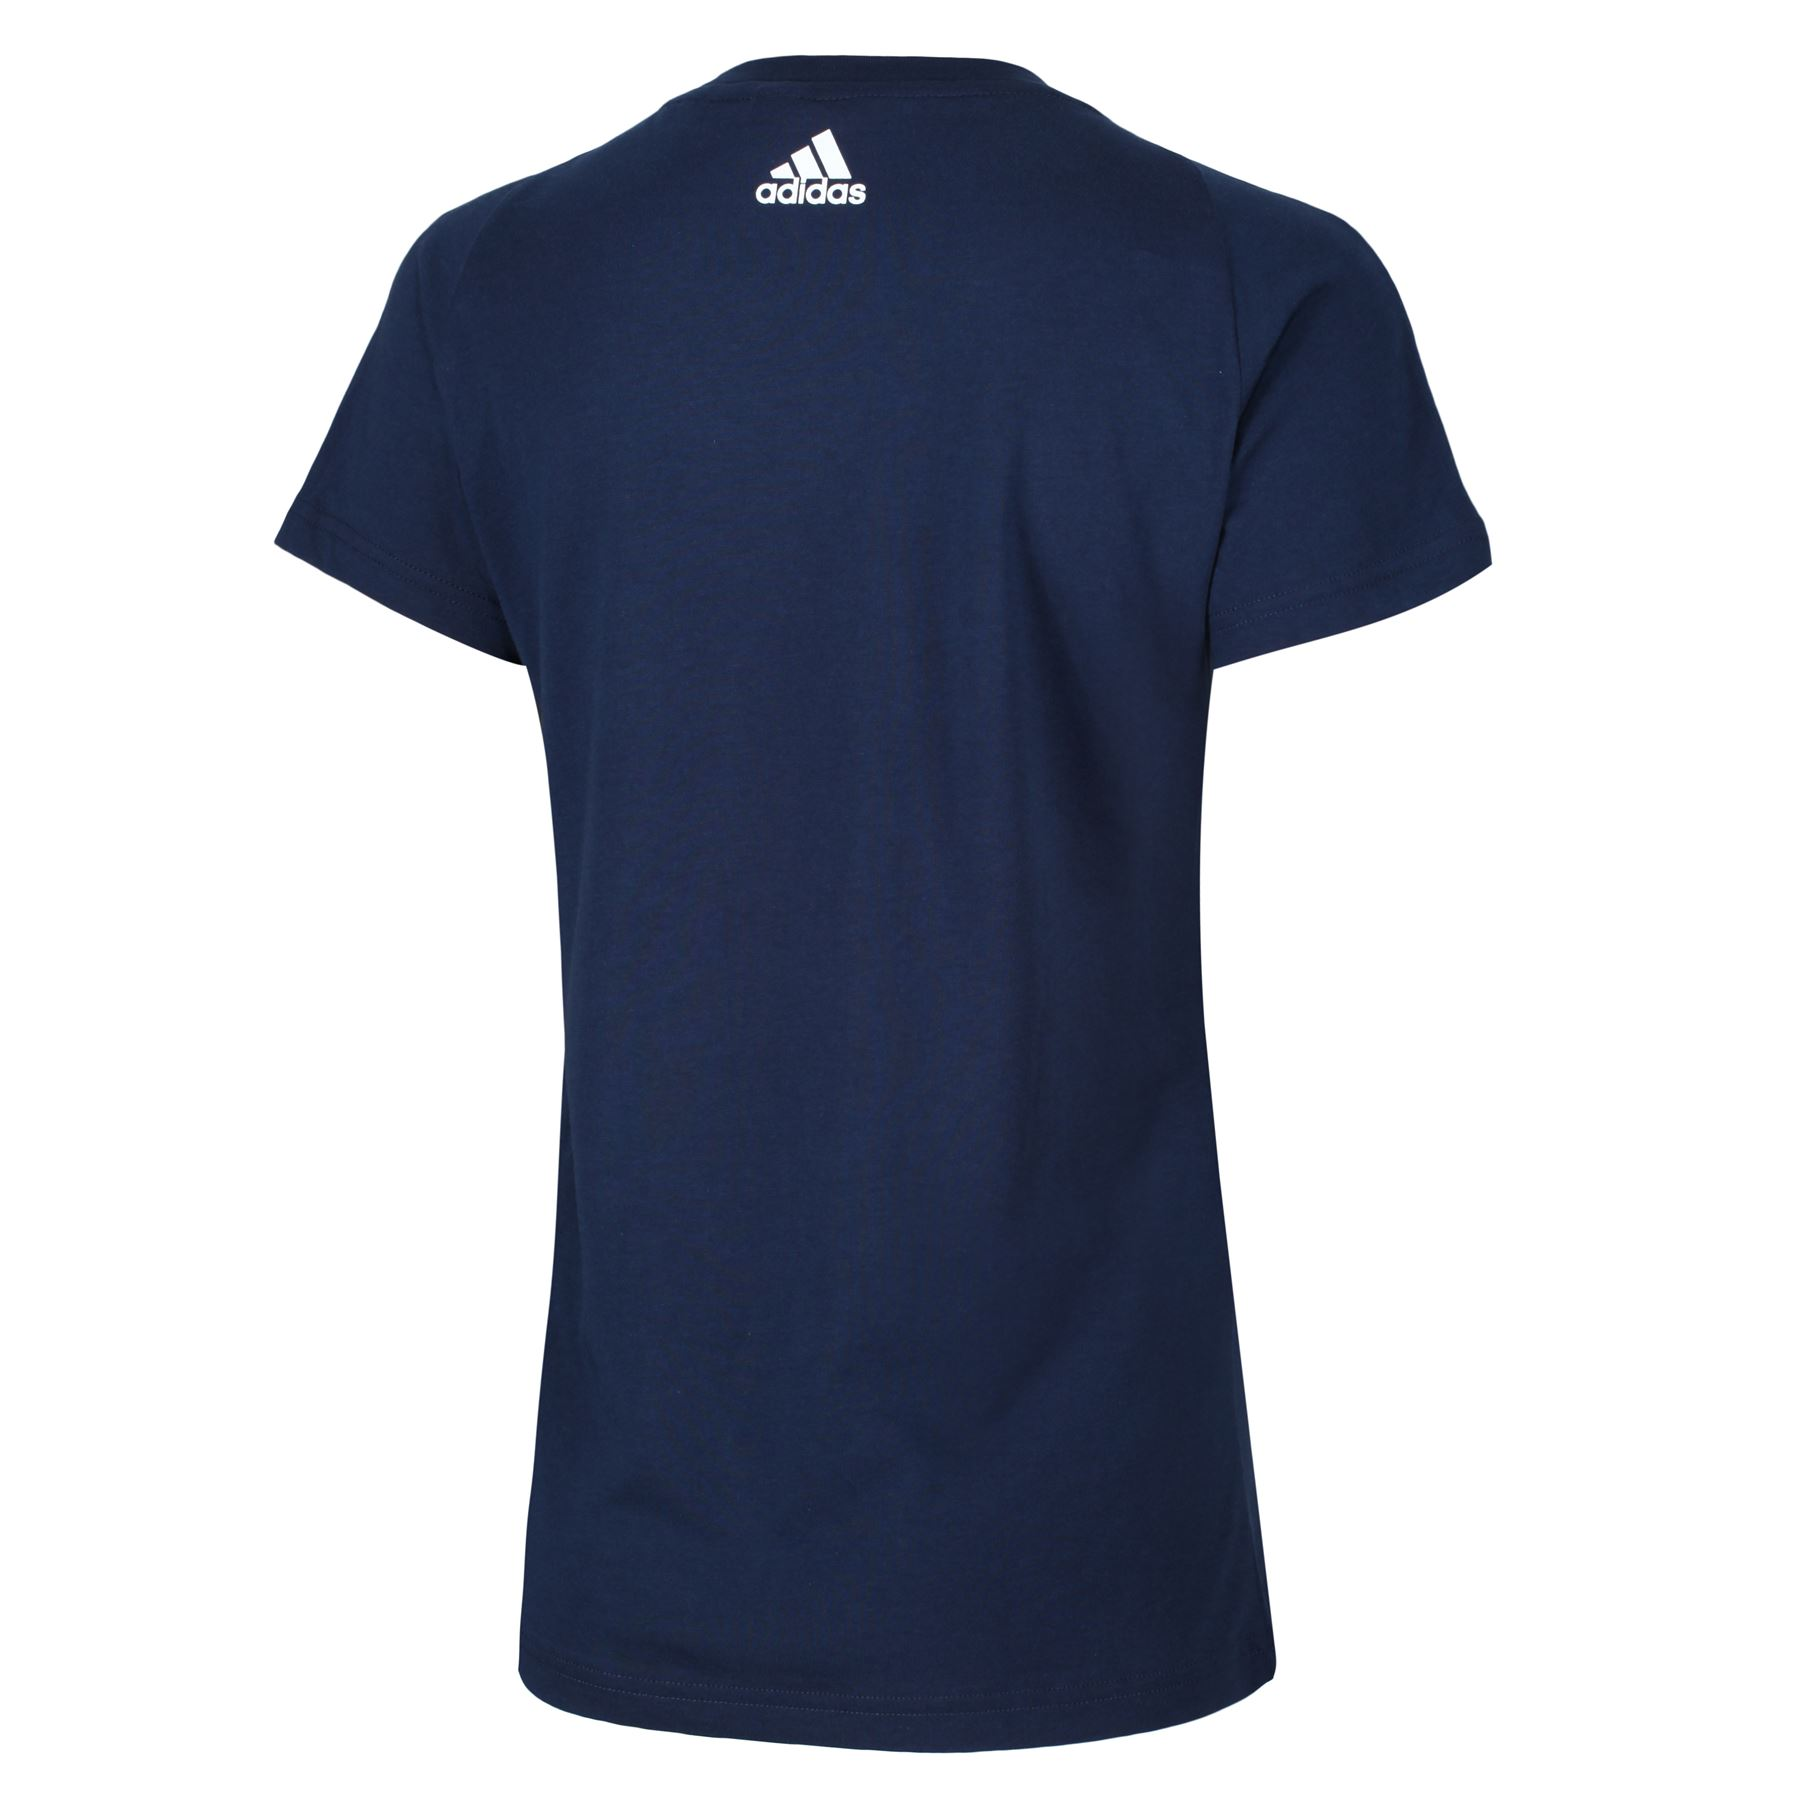 adidas-WOMEN-039-S-ESSENTIALS-LINEAR-T-SHIRT-GYM-BLACK-PINK-WHITE-NAVY-GIRLS-LADIES thumbnail 13